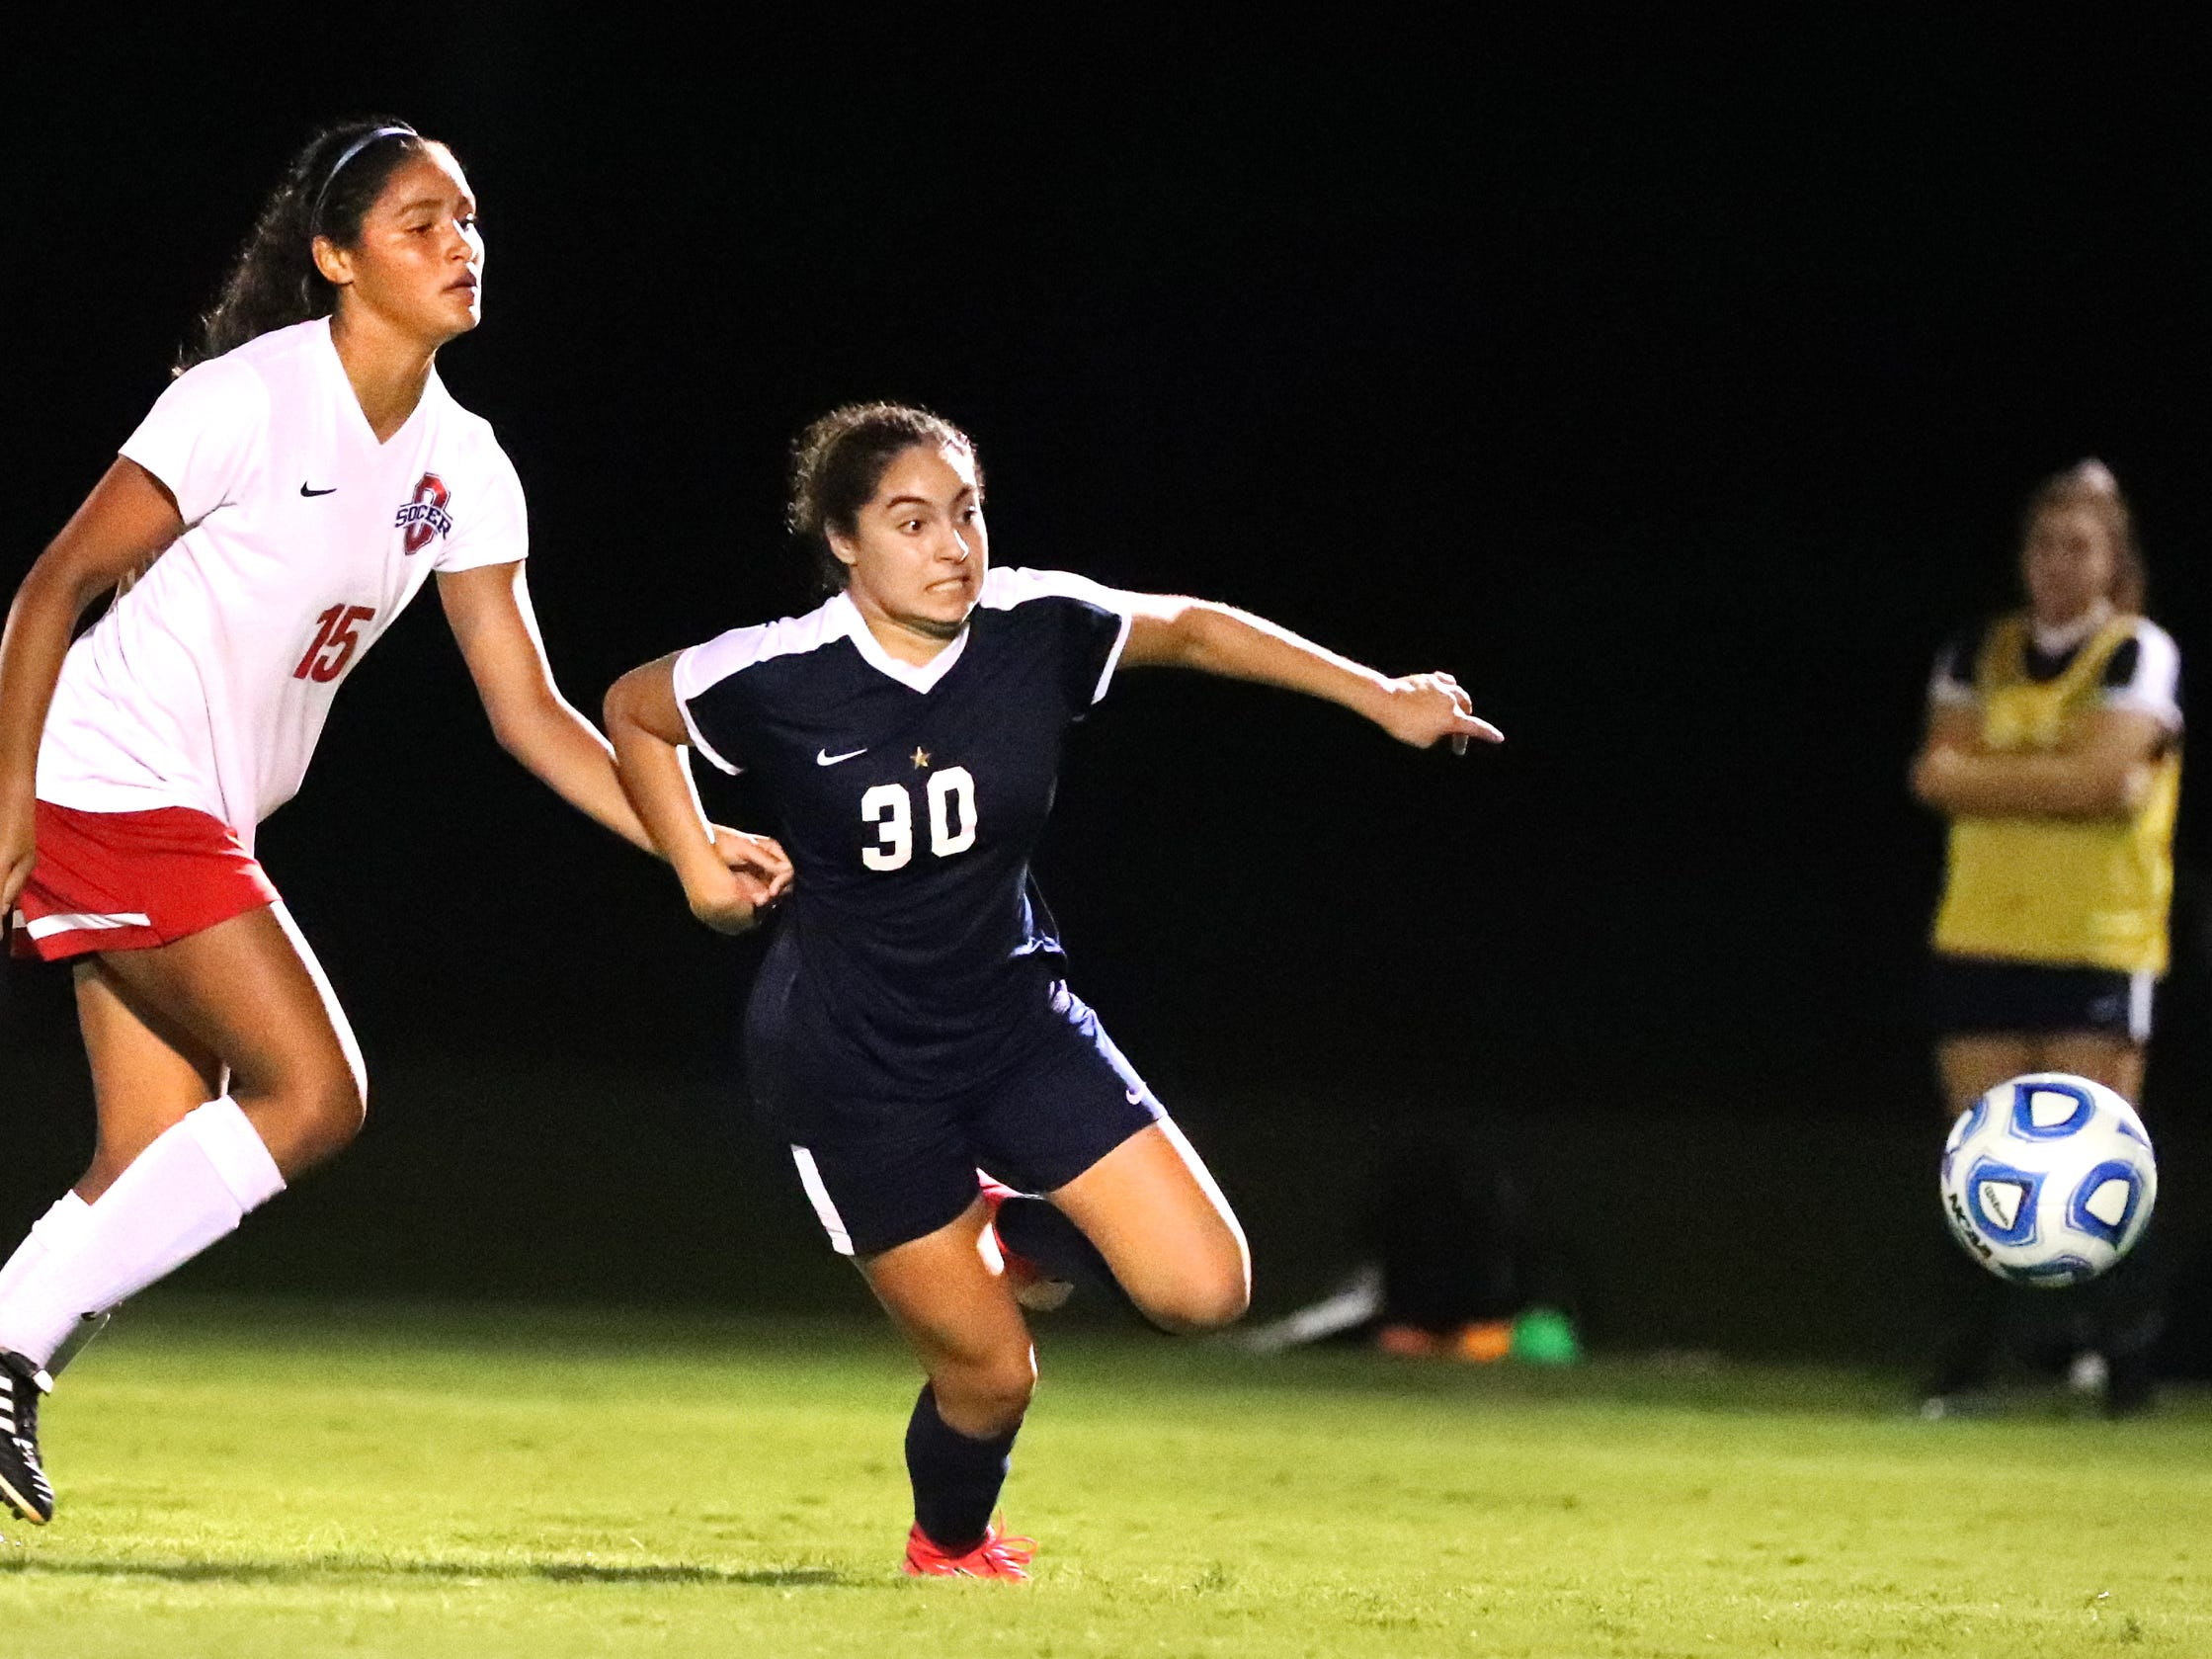 Oakland's Ella Riley(15) and Siegel's Emily Sanchez (30) both go after the ball during the semifinals of the 7-AAA Soccer Tournament, on Tuesday,  Oct. 09, 2018 at the Siegel Soccer Complex.